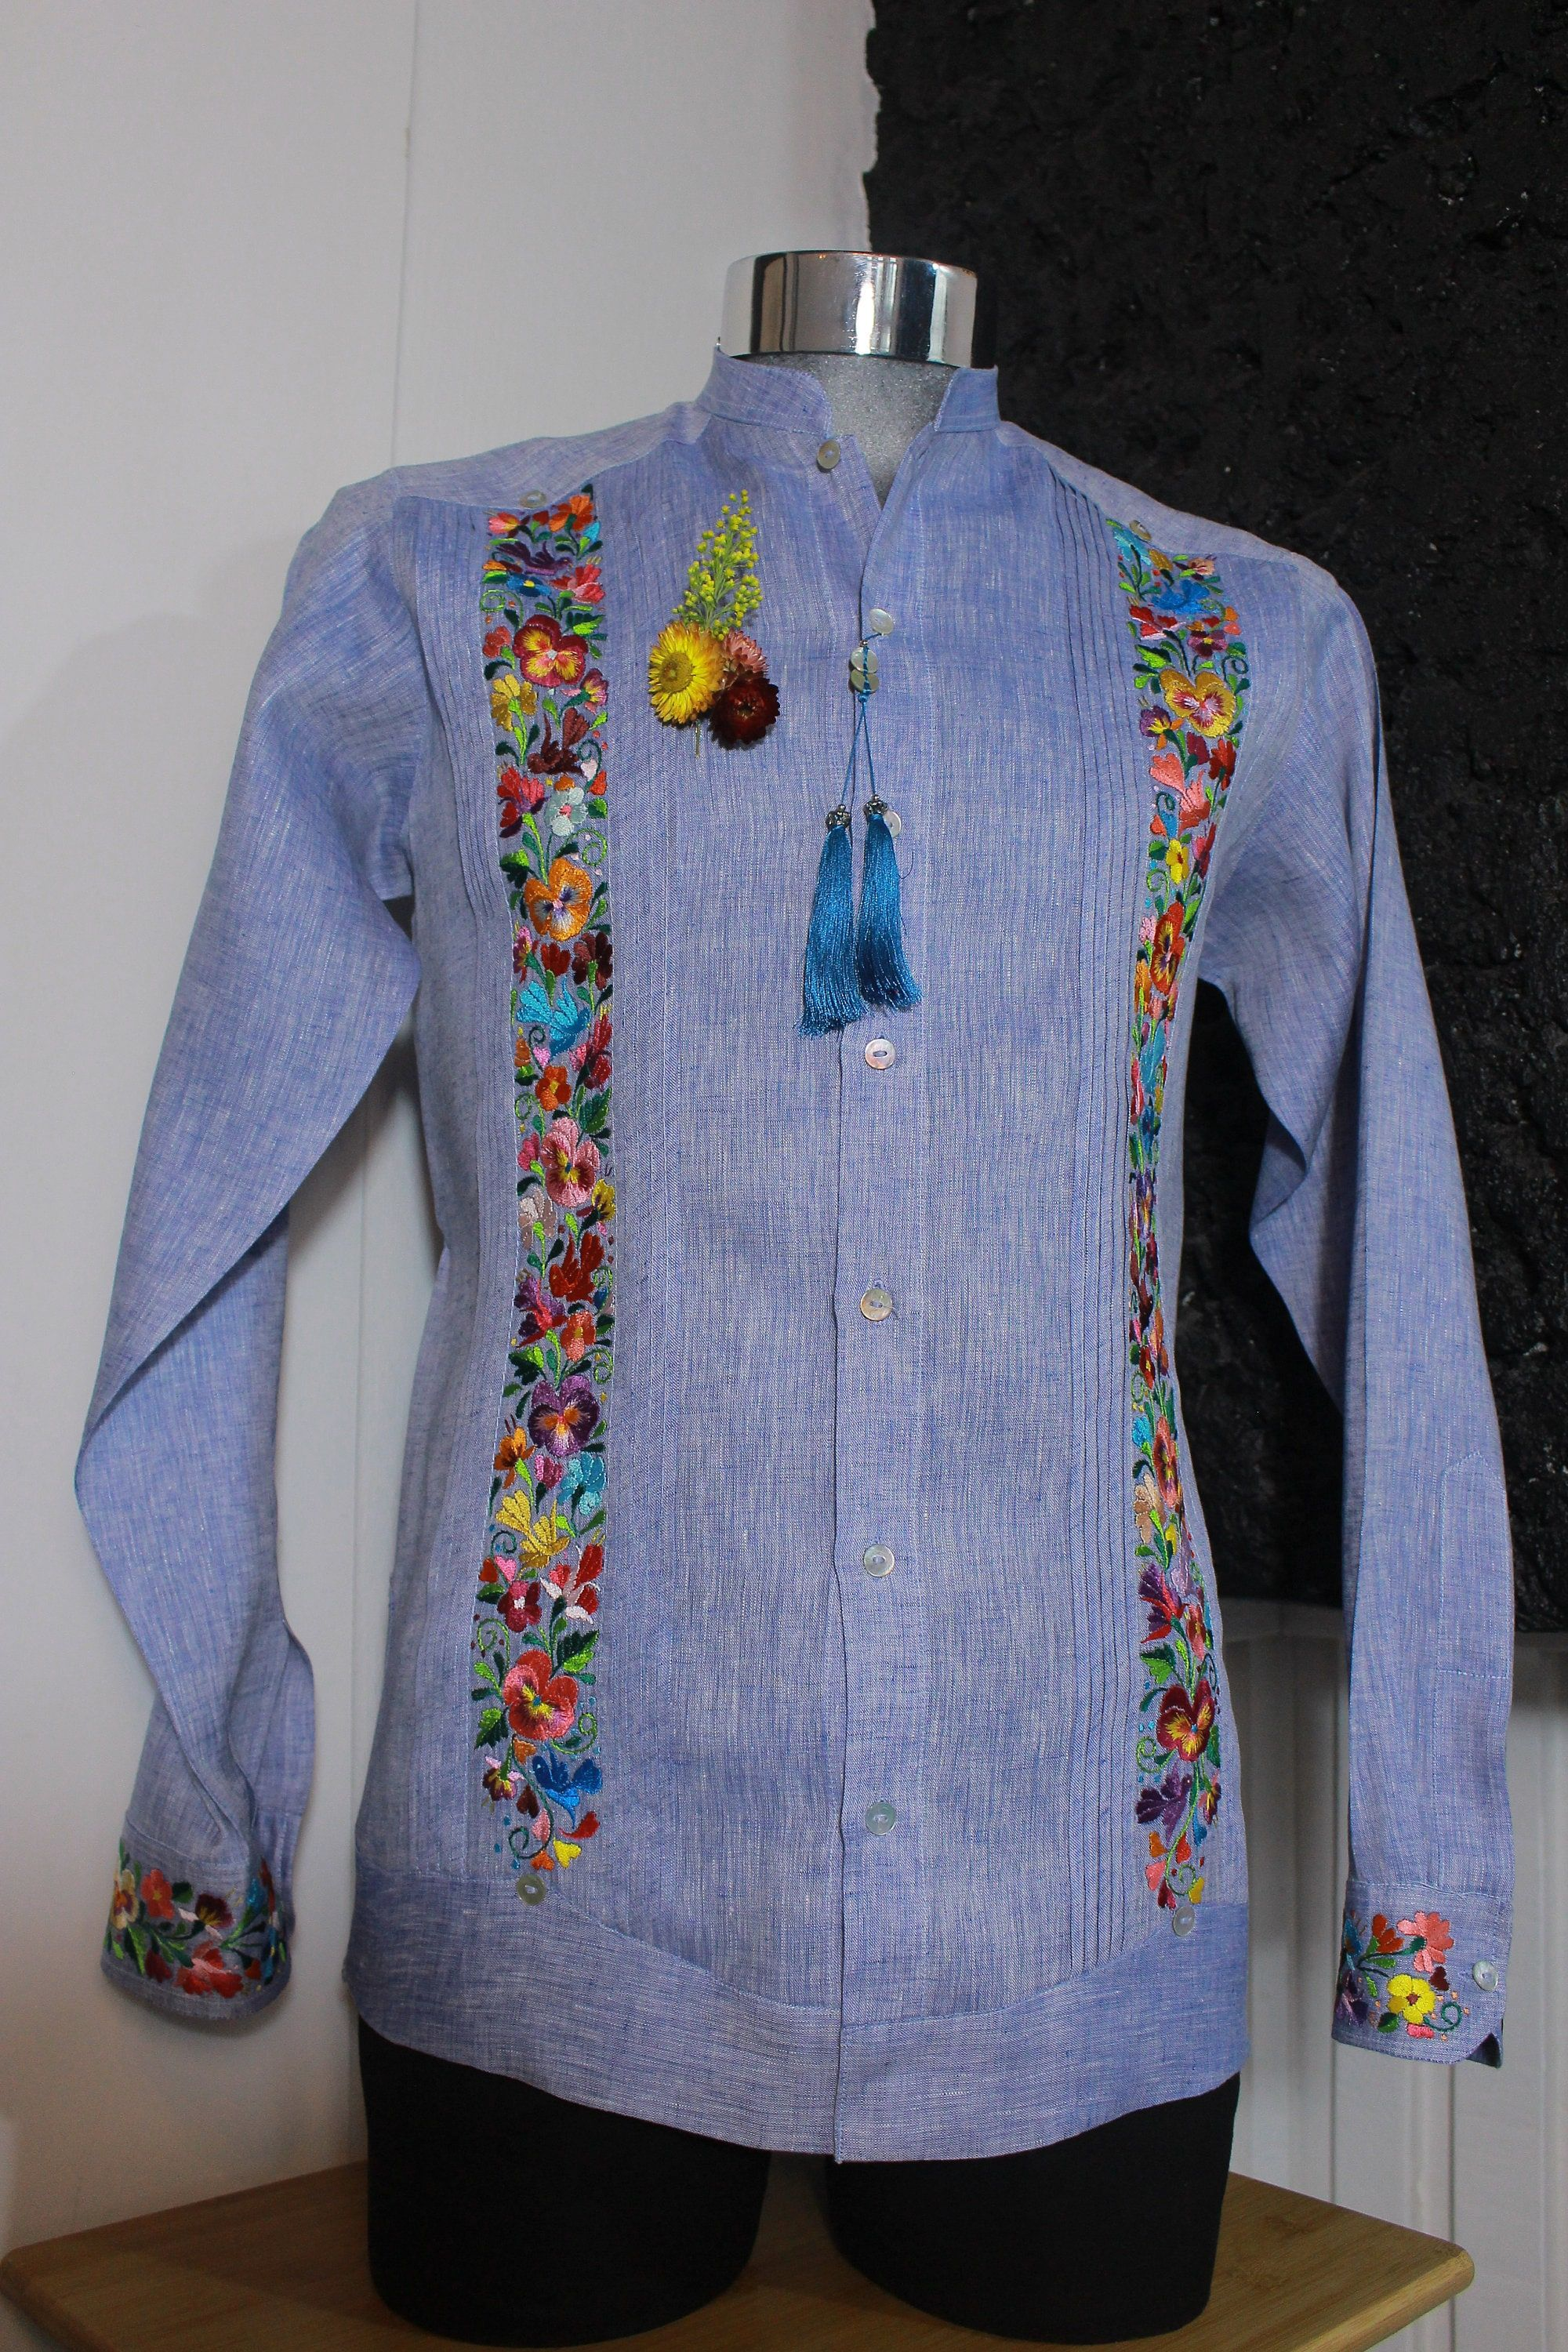 """""""Beautiful linen Guayabera for gentleman with handmade embroidery from Oaxaca Mexico. We strive to offer our customer a high quality product and great fashion taste, mixing a classic shirt with the artisan touch. Fall in love with this handmade shirt and wear with style in yours events. SIZES: (Look images for the details) SIZE 36 / Small SIZE 38 / Medium SIZE 40 / Large SIZE 42 / XL SIZE 44 / XXL NOTE: the measuraments can change since +/- 1 cm in chest and waist. The \""""Raíz Roja\"""" guayabera ar"""